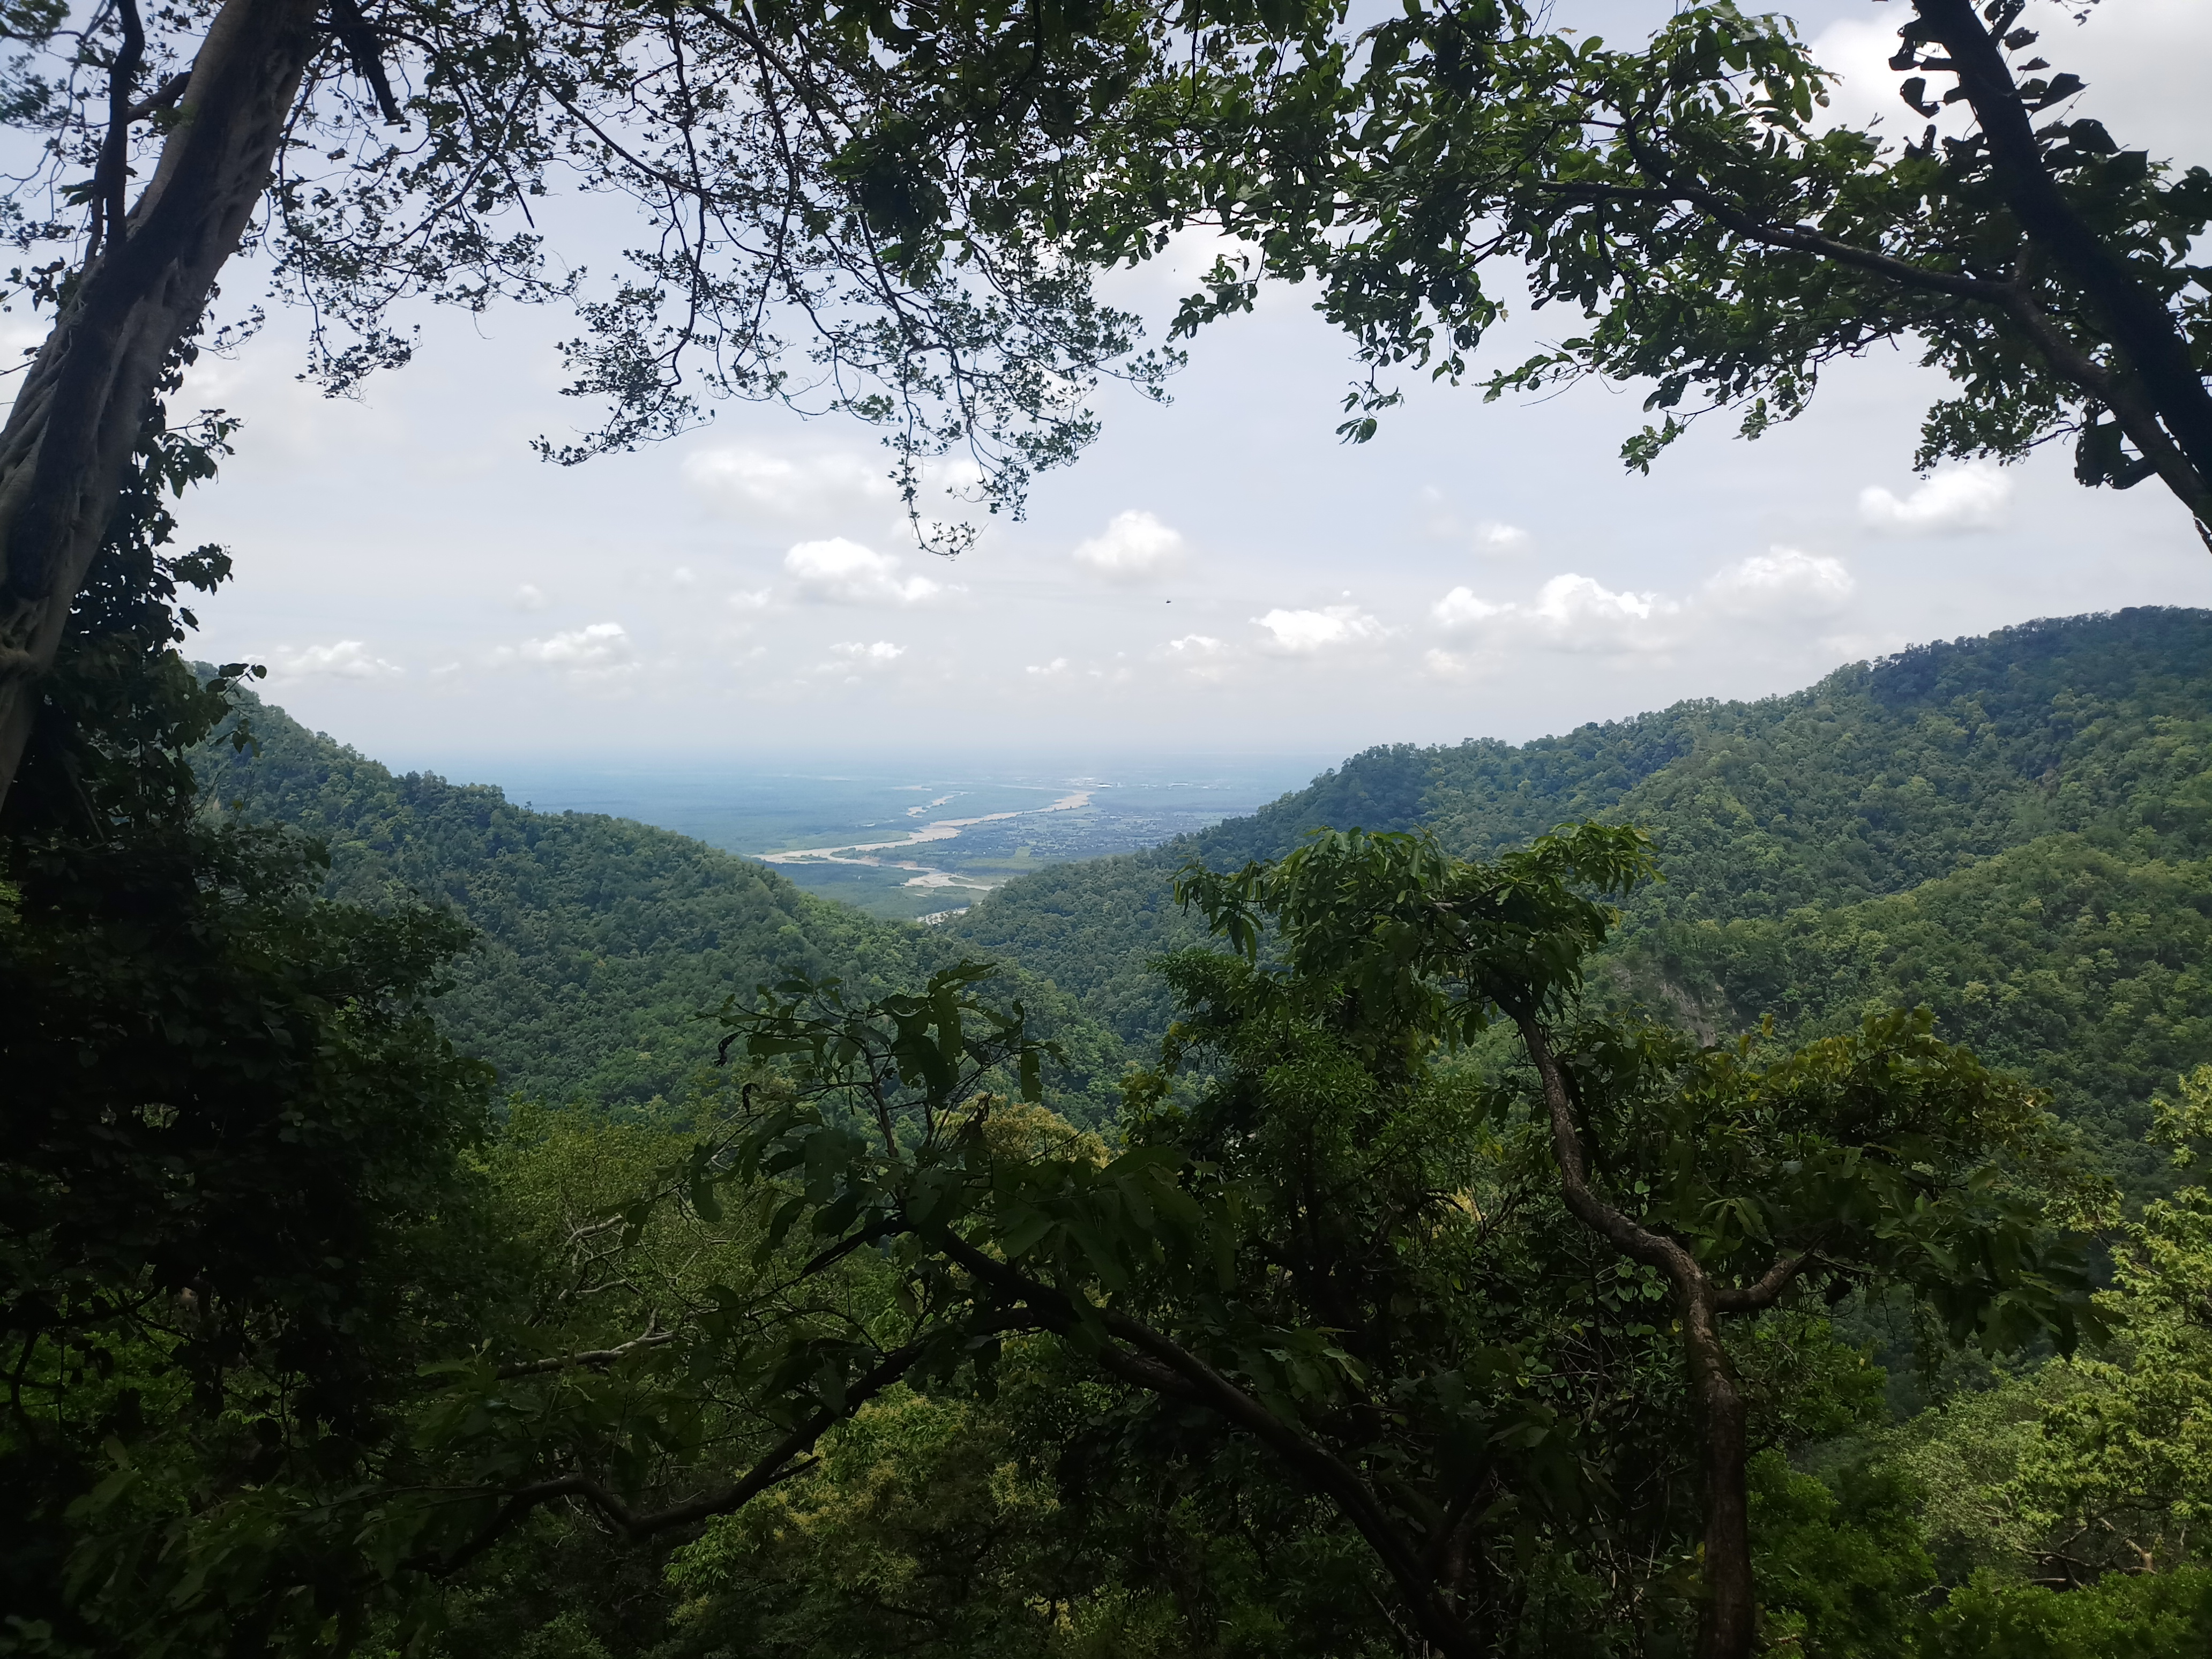 View from mountainous top.